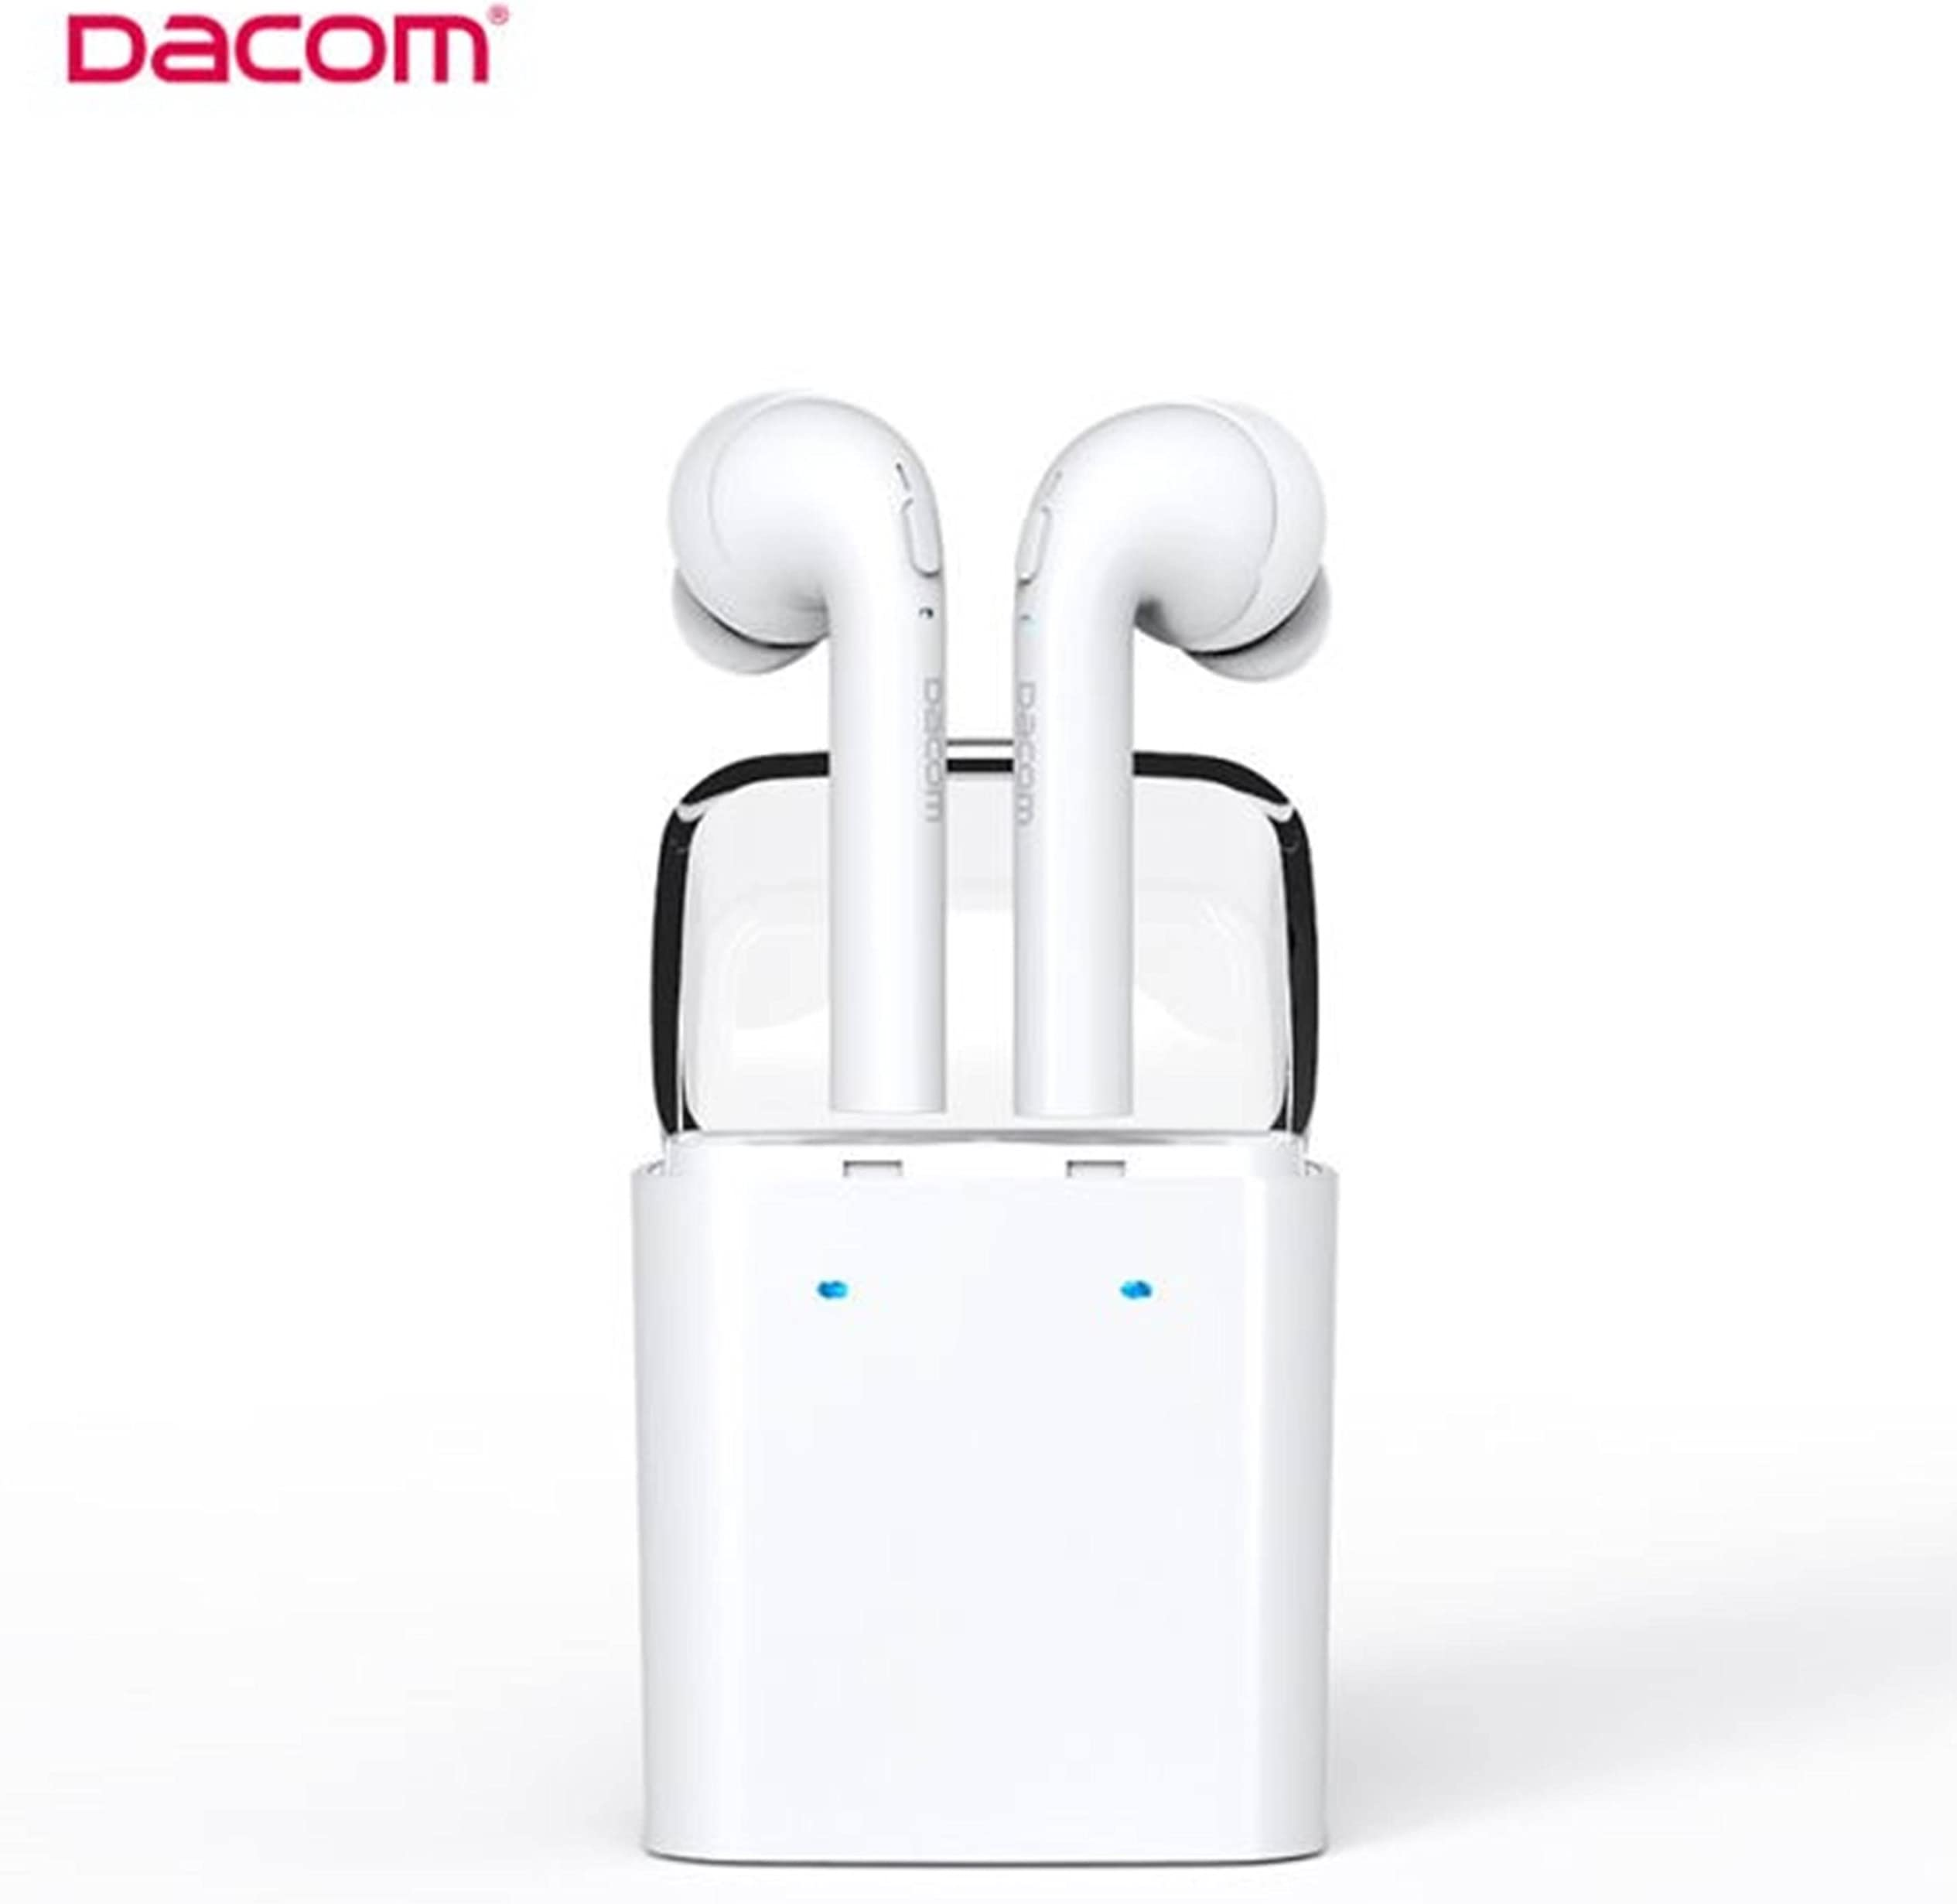 Dacom Tws7 True Wireless Bluetooth Earbuds Earphone For Apple Iphone 7 7 Plus Headset Double Twins Earphones For Android Price In Uae Amazon Uae Kanbkam